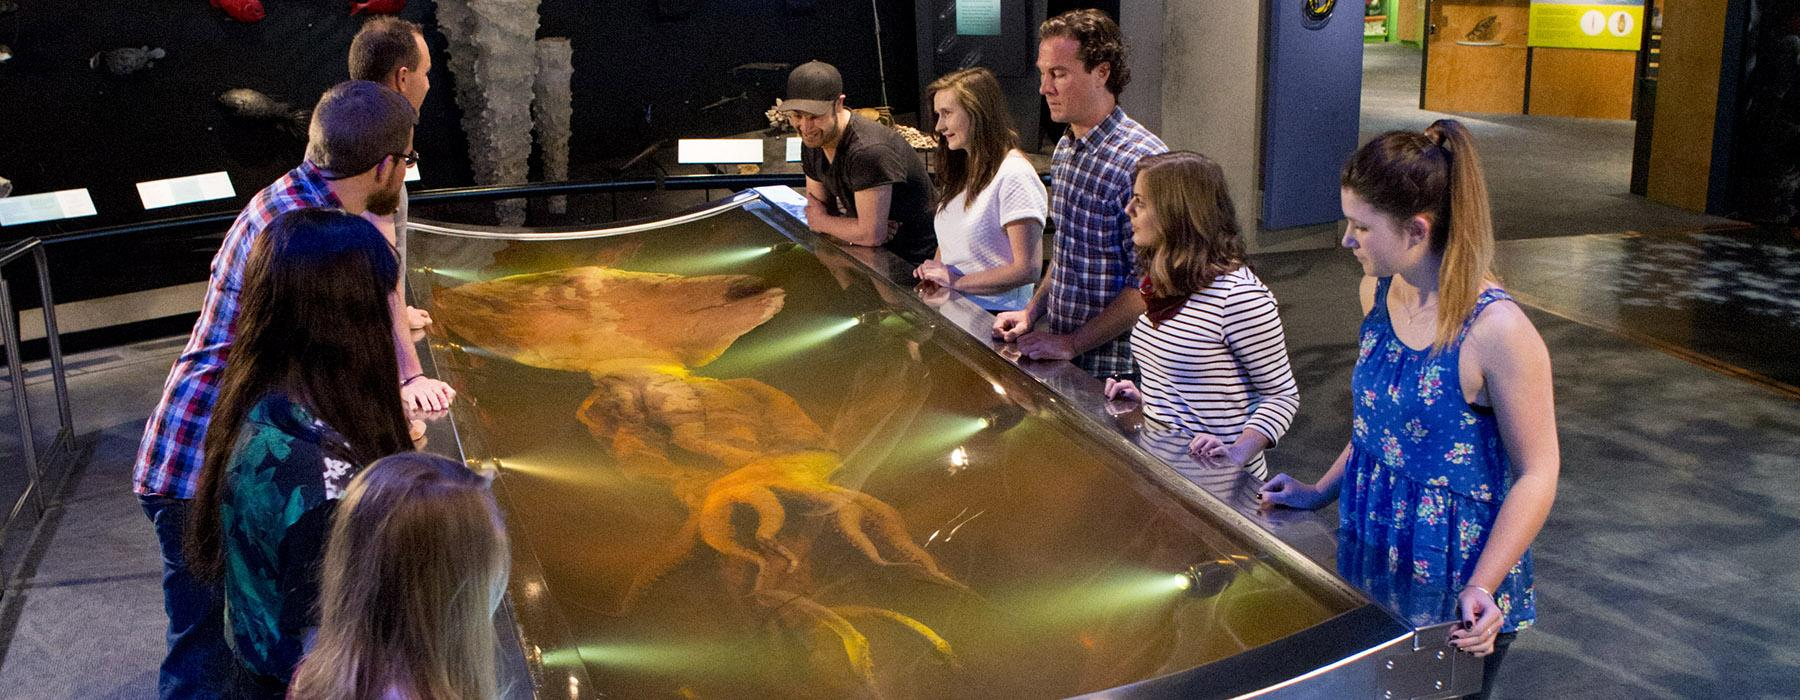 Visitors looking at the giant squid